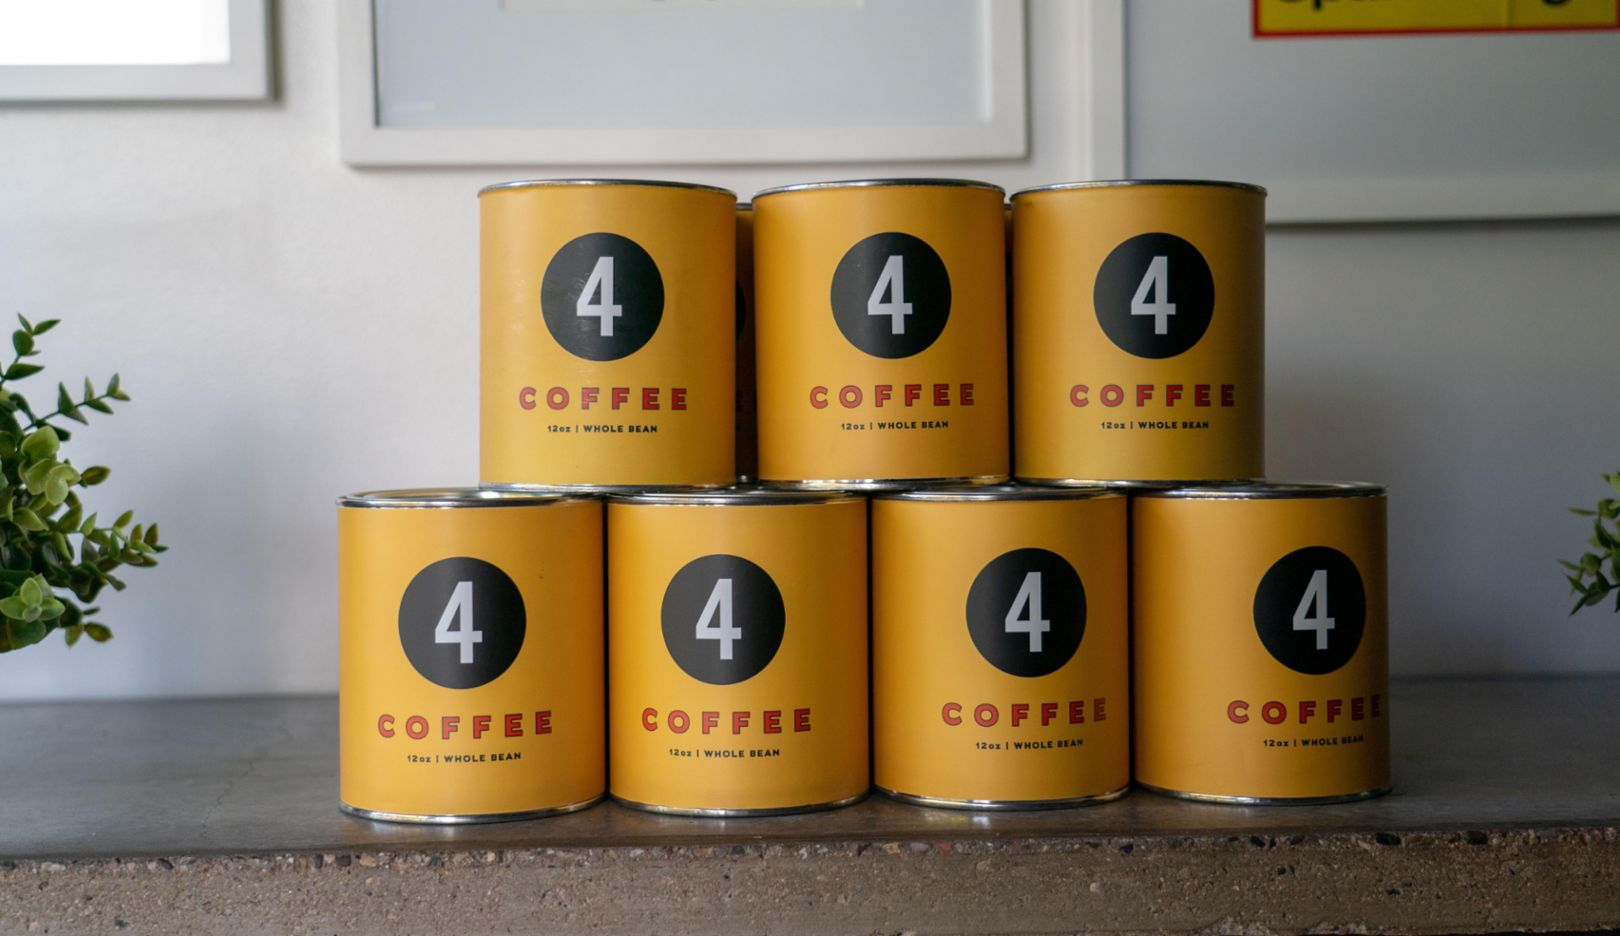 No coincidence: the coffee beans come from Casey's favorite café: Fourtillfour. A subtle reference to the legendary Porsche 356.